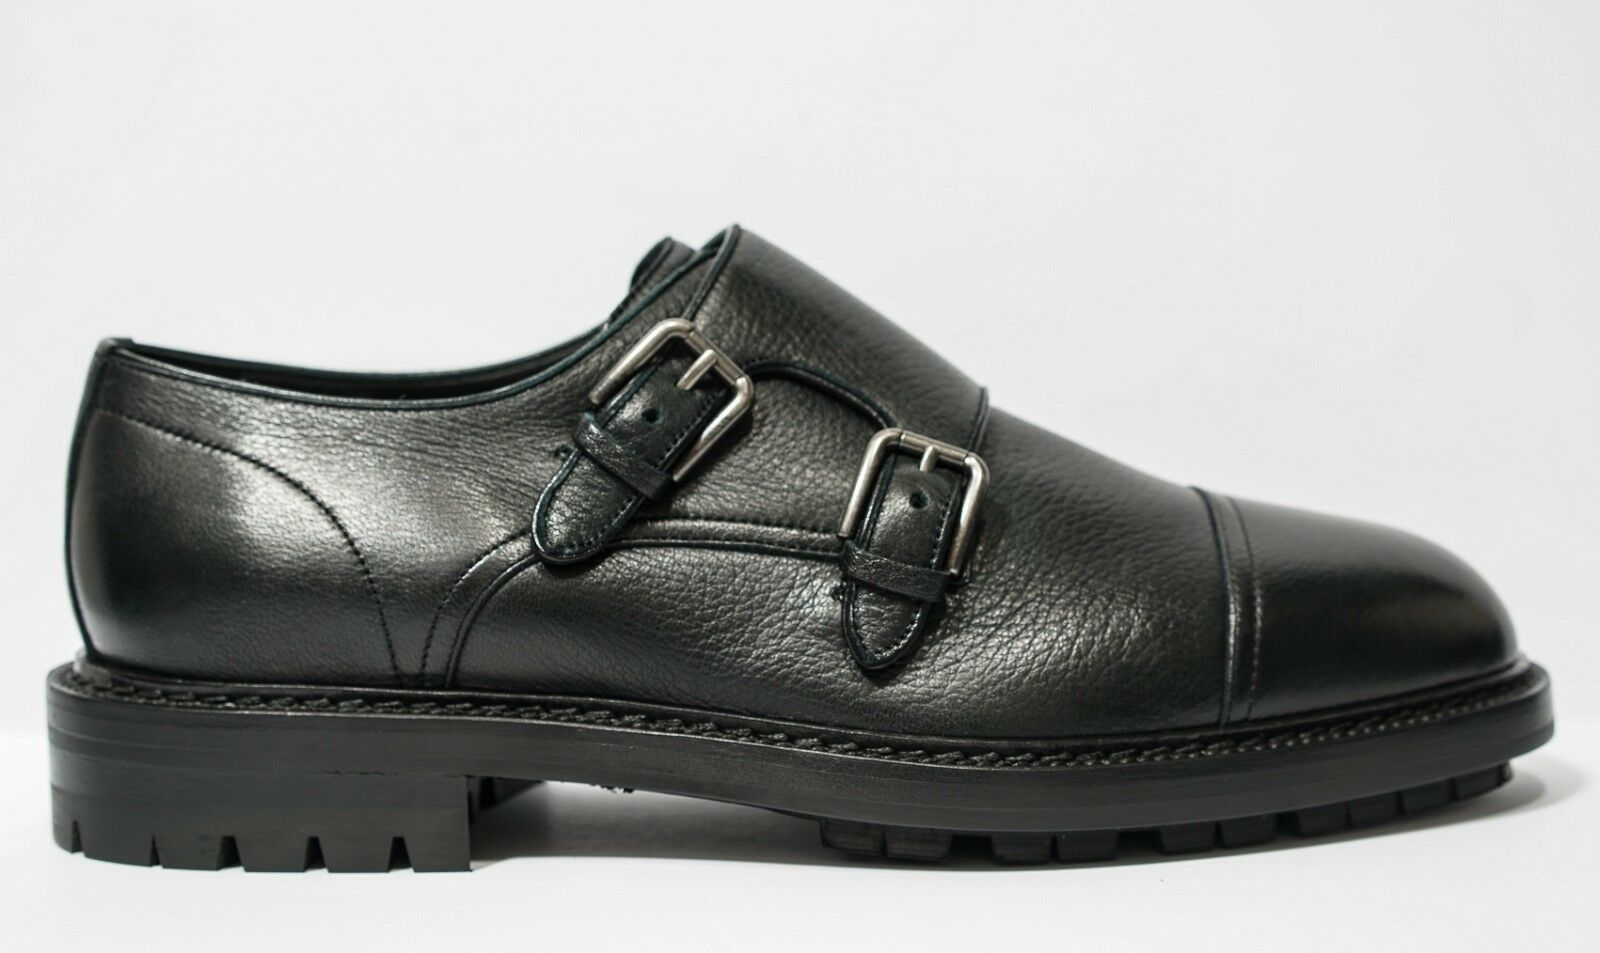 Dolce & Gabbana Men's Black 2 Buckle Shoe A10223